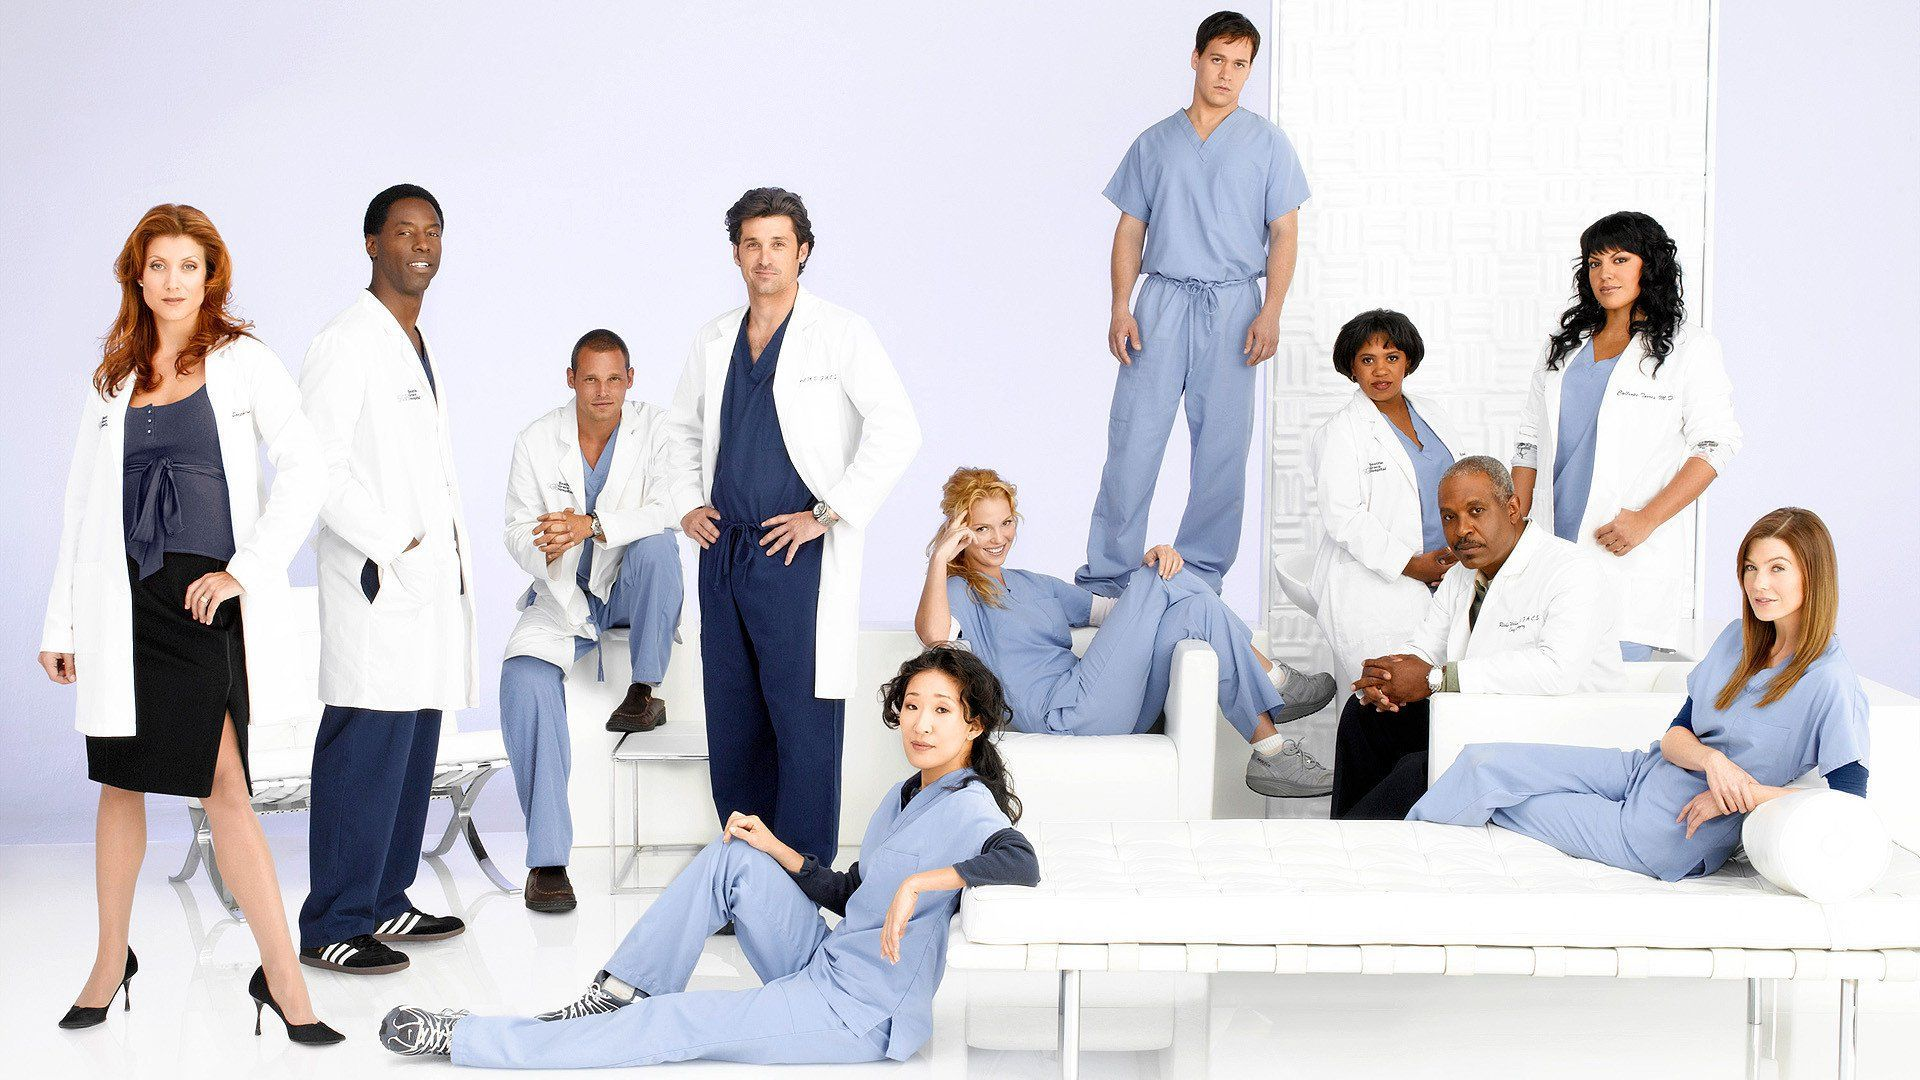 ッFULL~Watch!] - Grey\'s Anatomy Season 14 Episode 11 : (Don\'t Fear ...